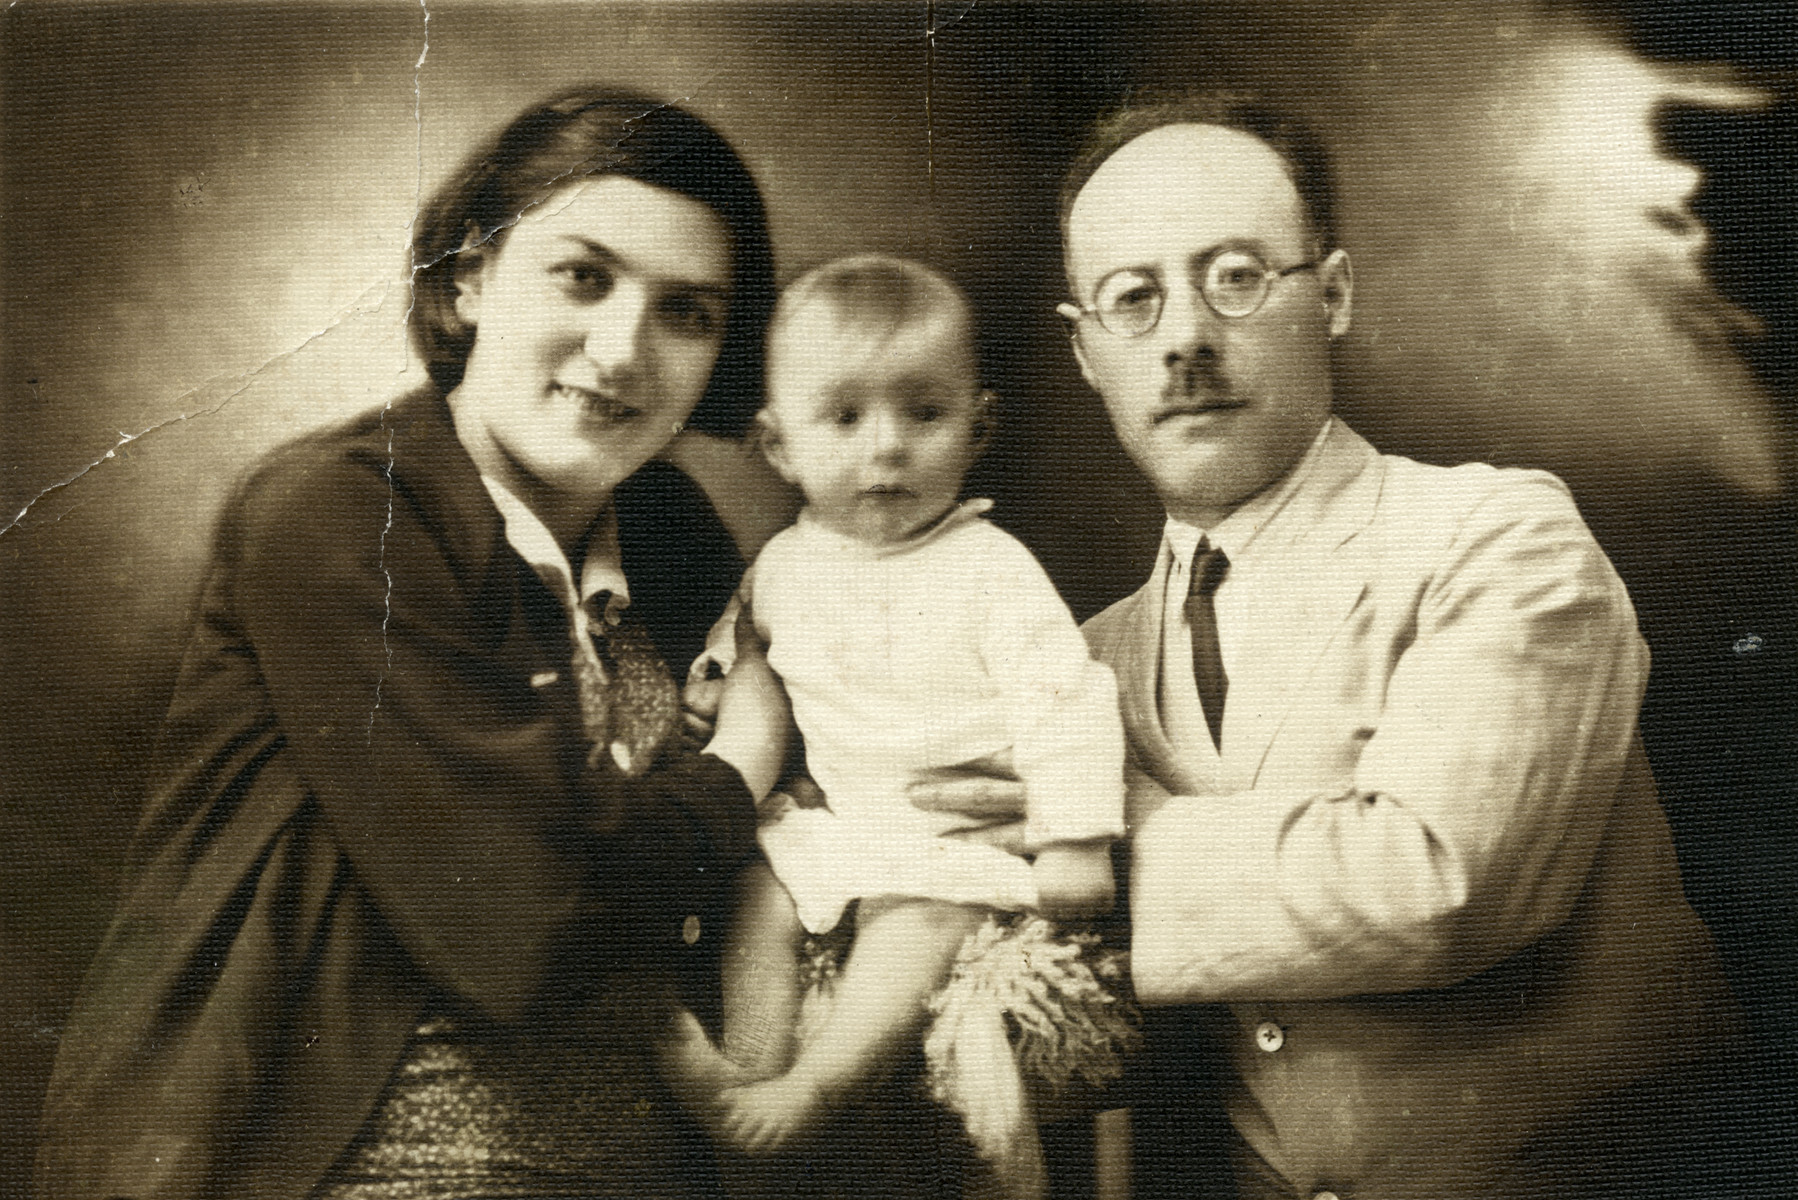 Raul with his parents Paula and Joseph Teitelbaum.